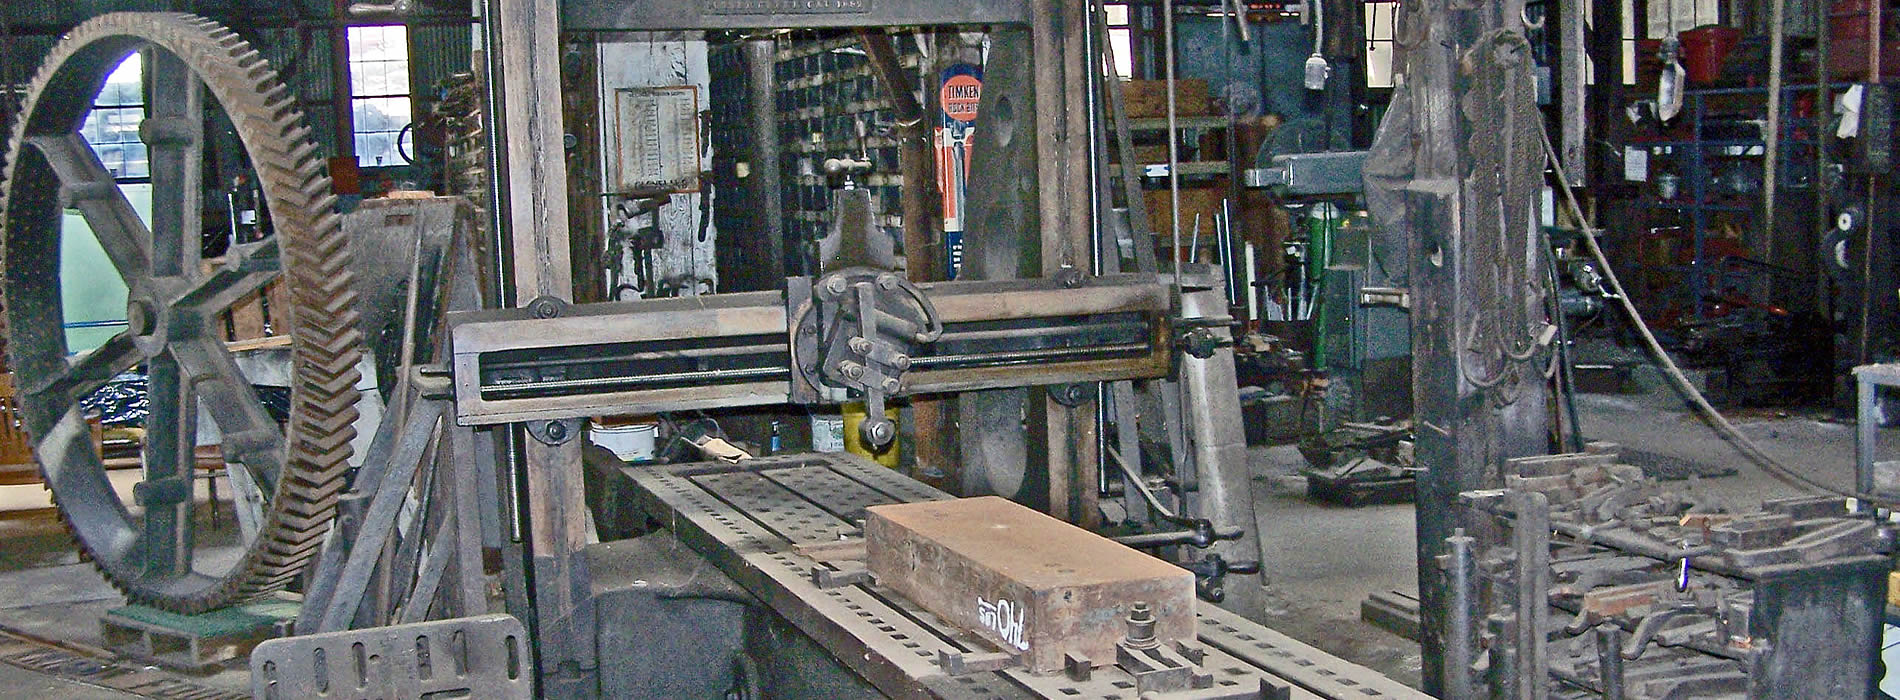 knight foundry sutter creek historic site please donate